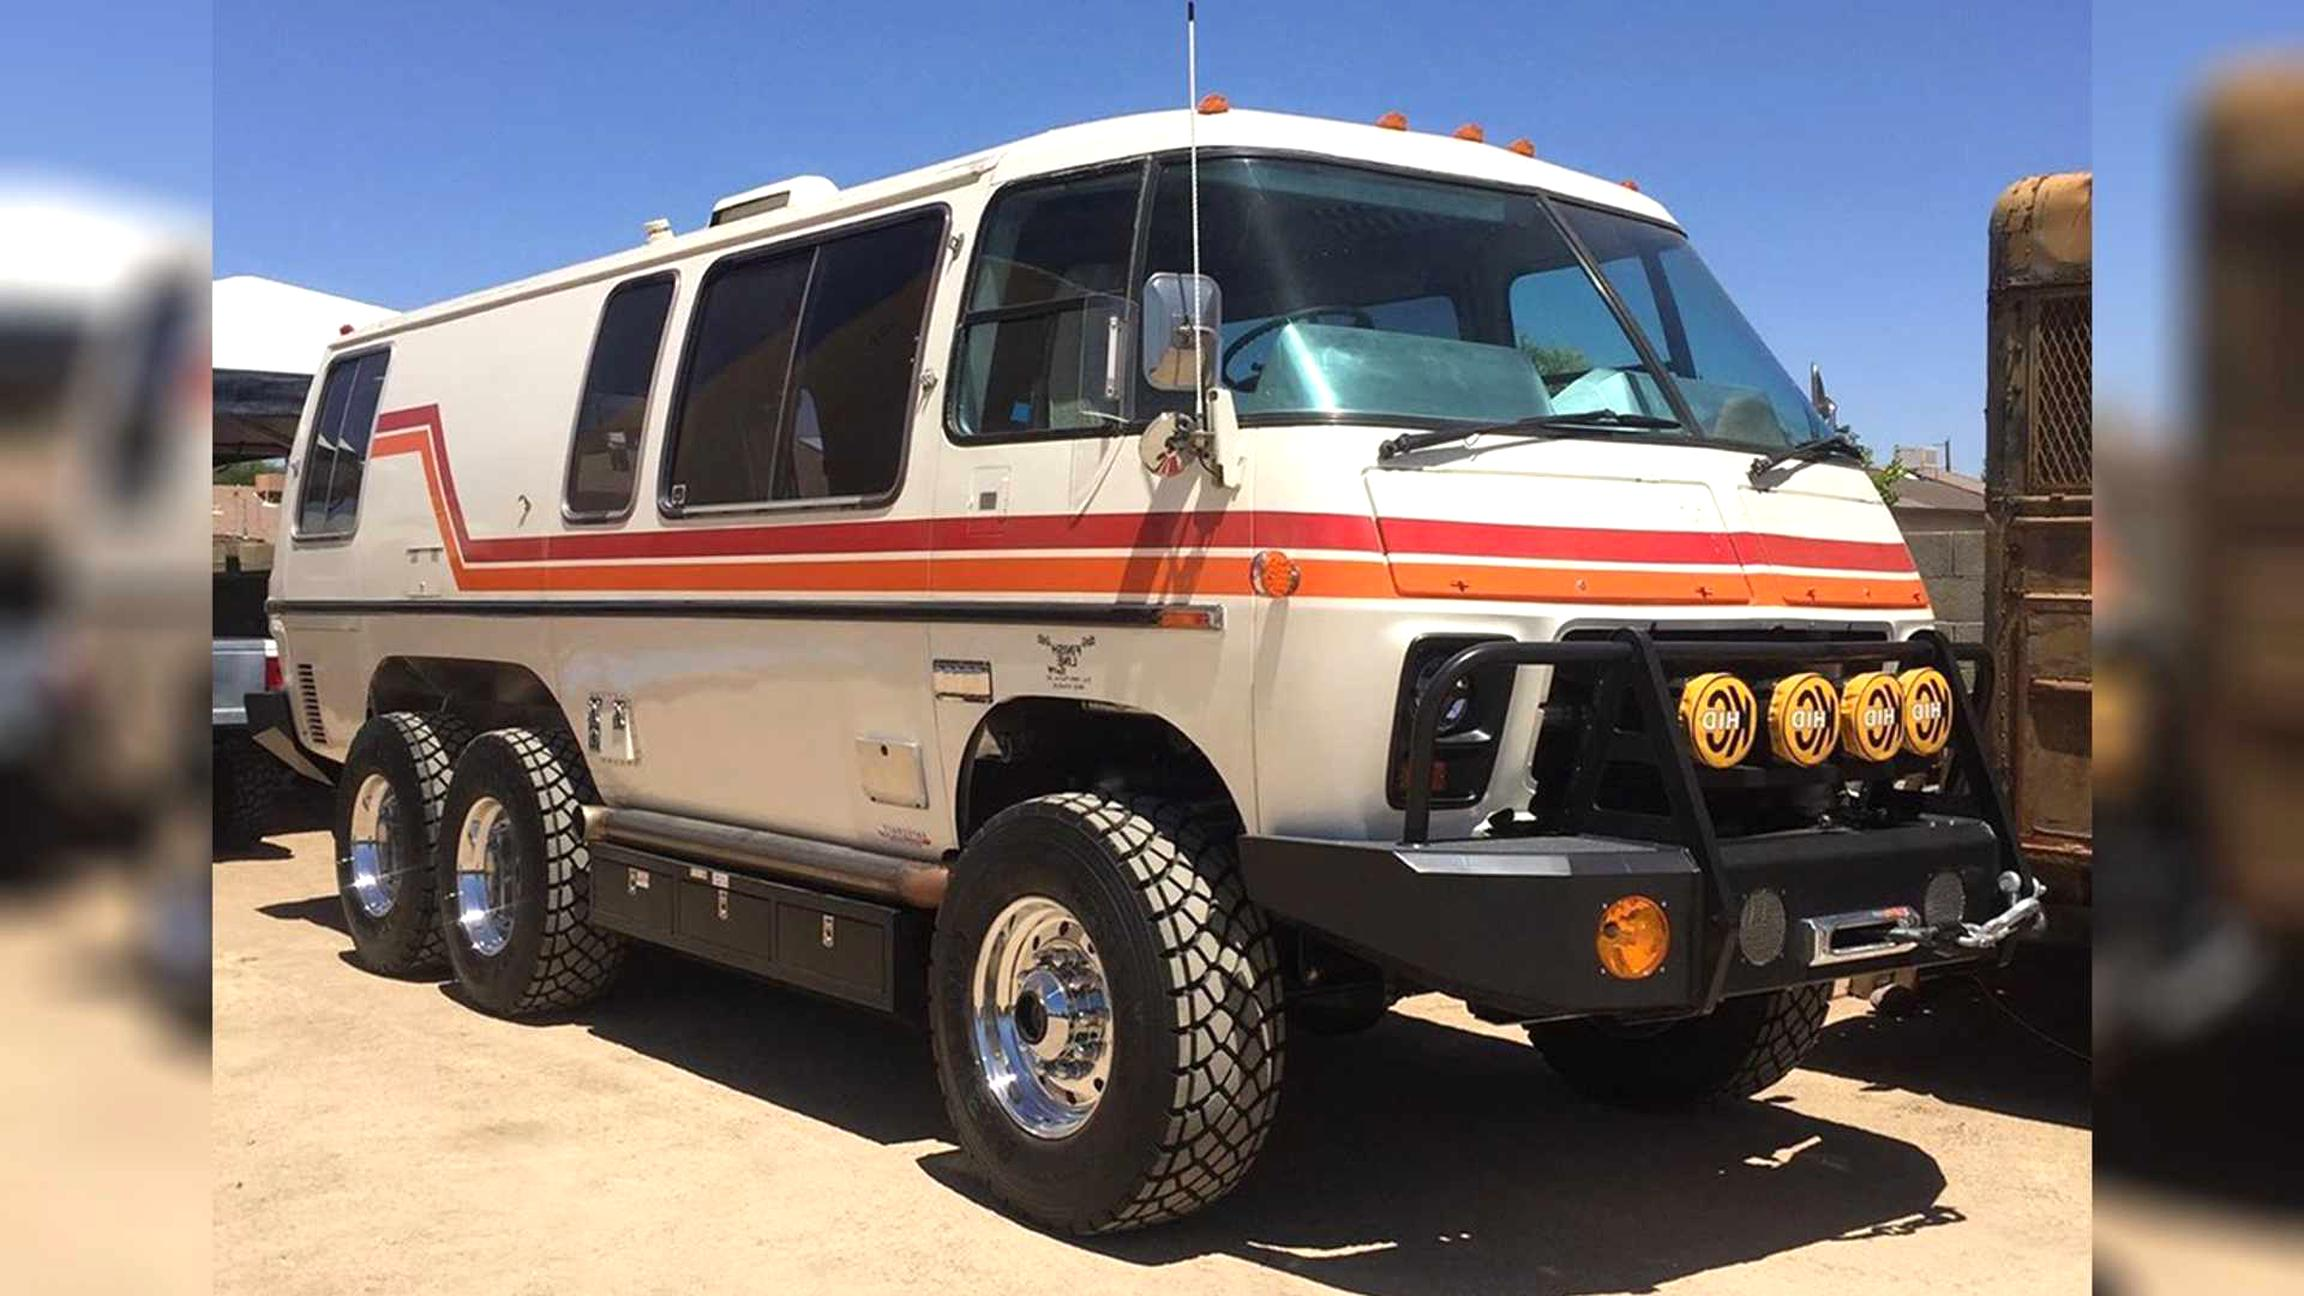 Gmc Motorhome For Sale >> Gmc Motorhome For Sale Only 3 Left At 60